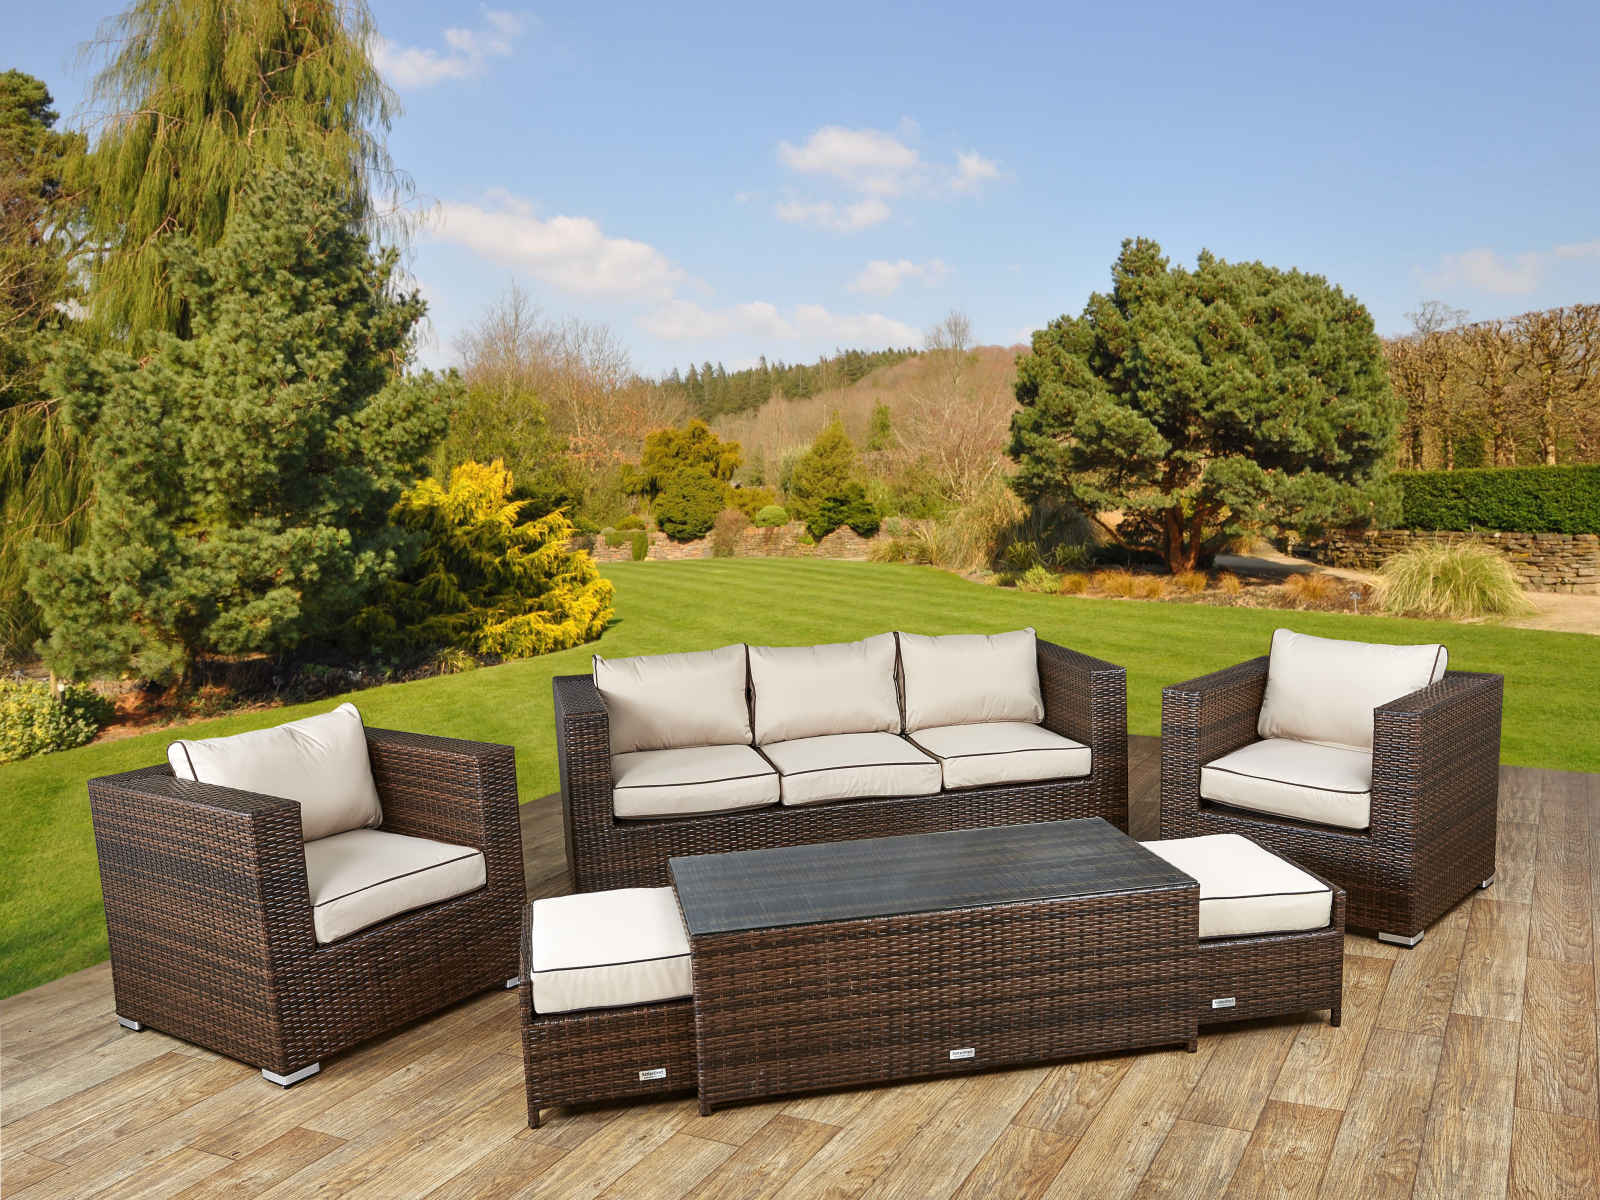 3 seater brown ascot sofa set chocolate cream rattan direct - Garden Furniture Uk Cheap